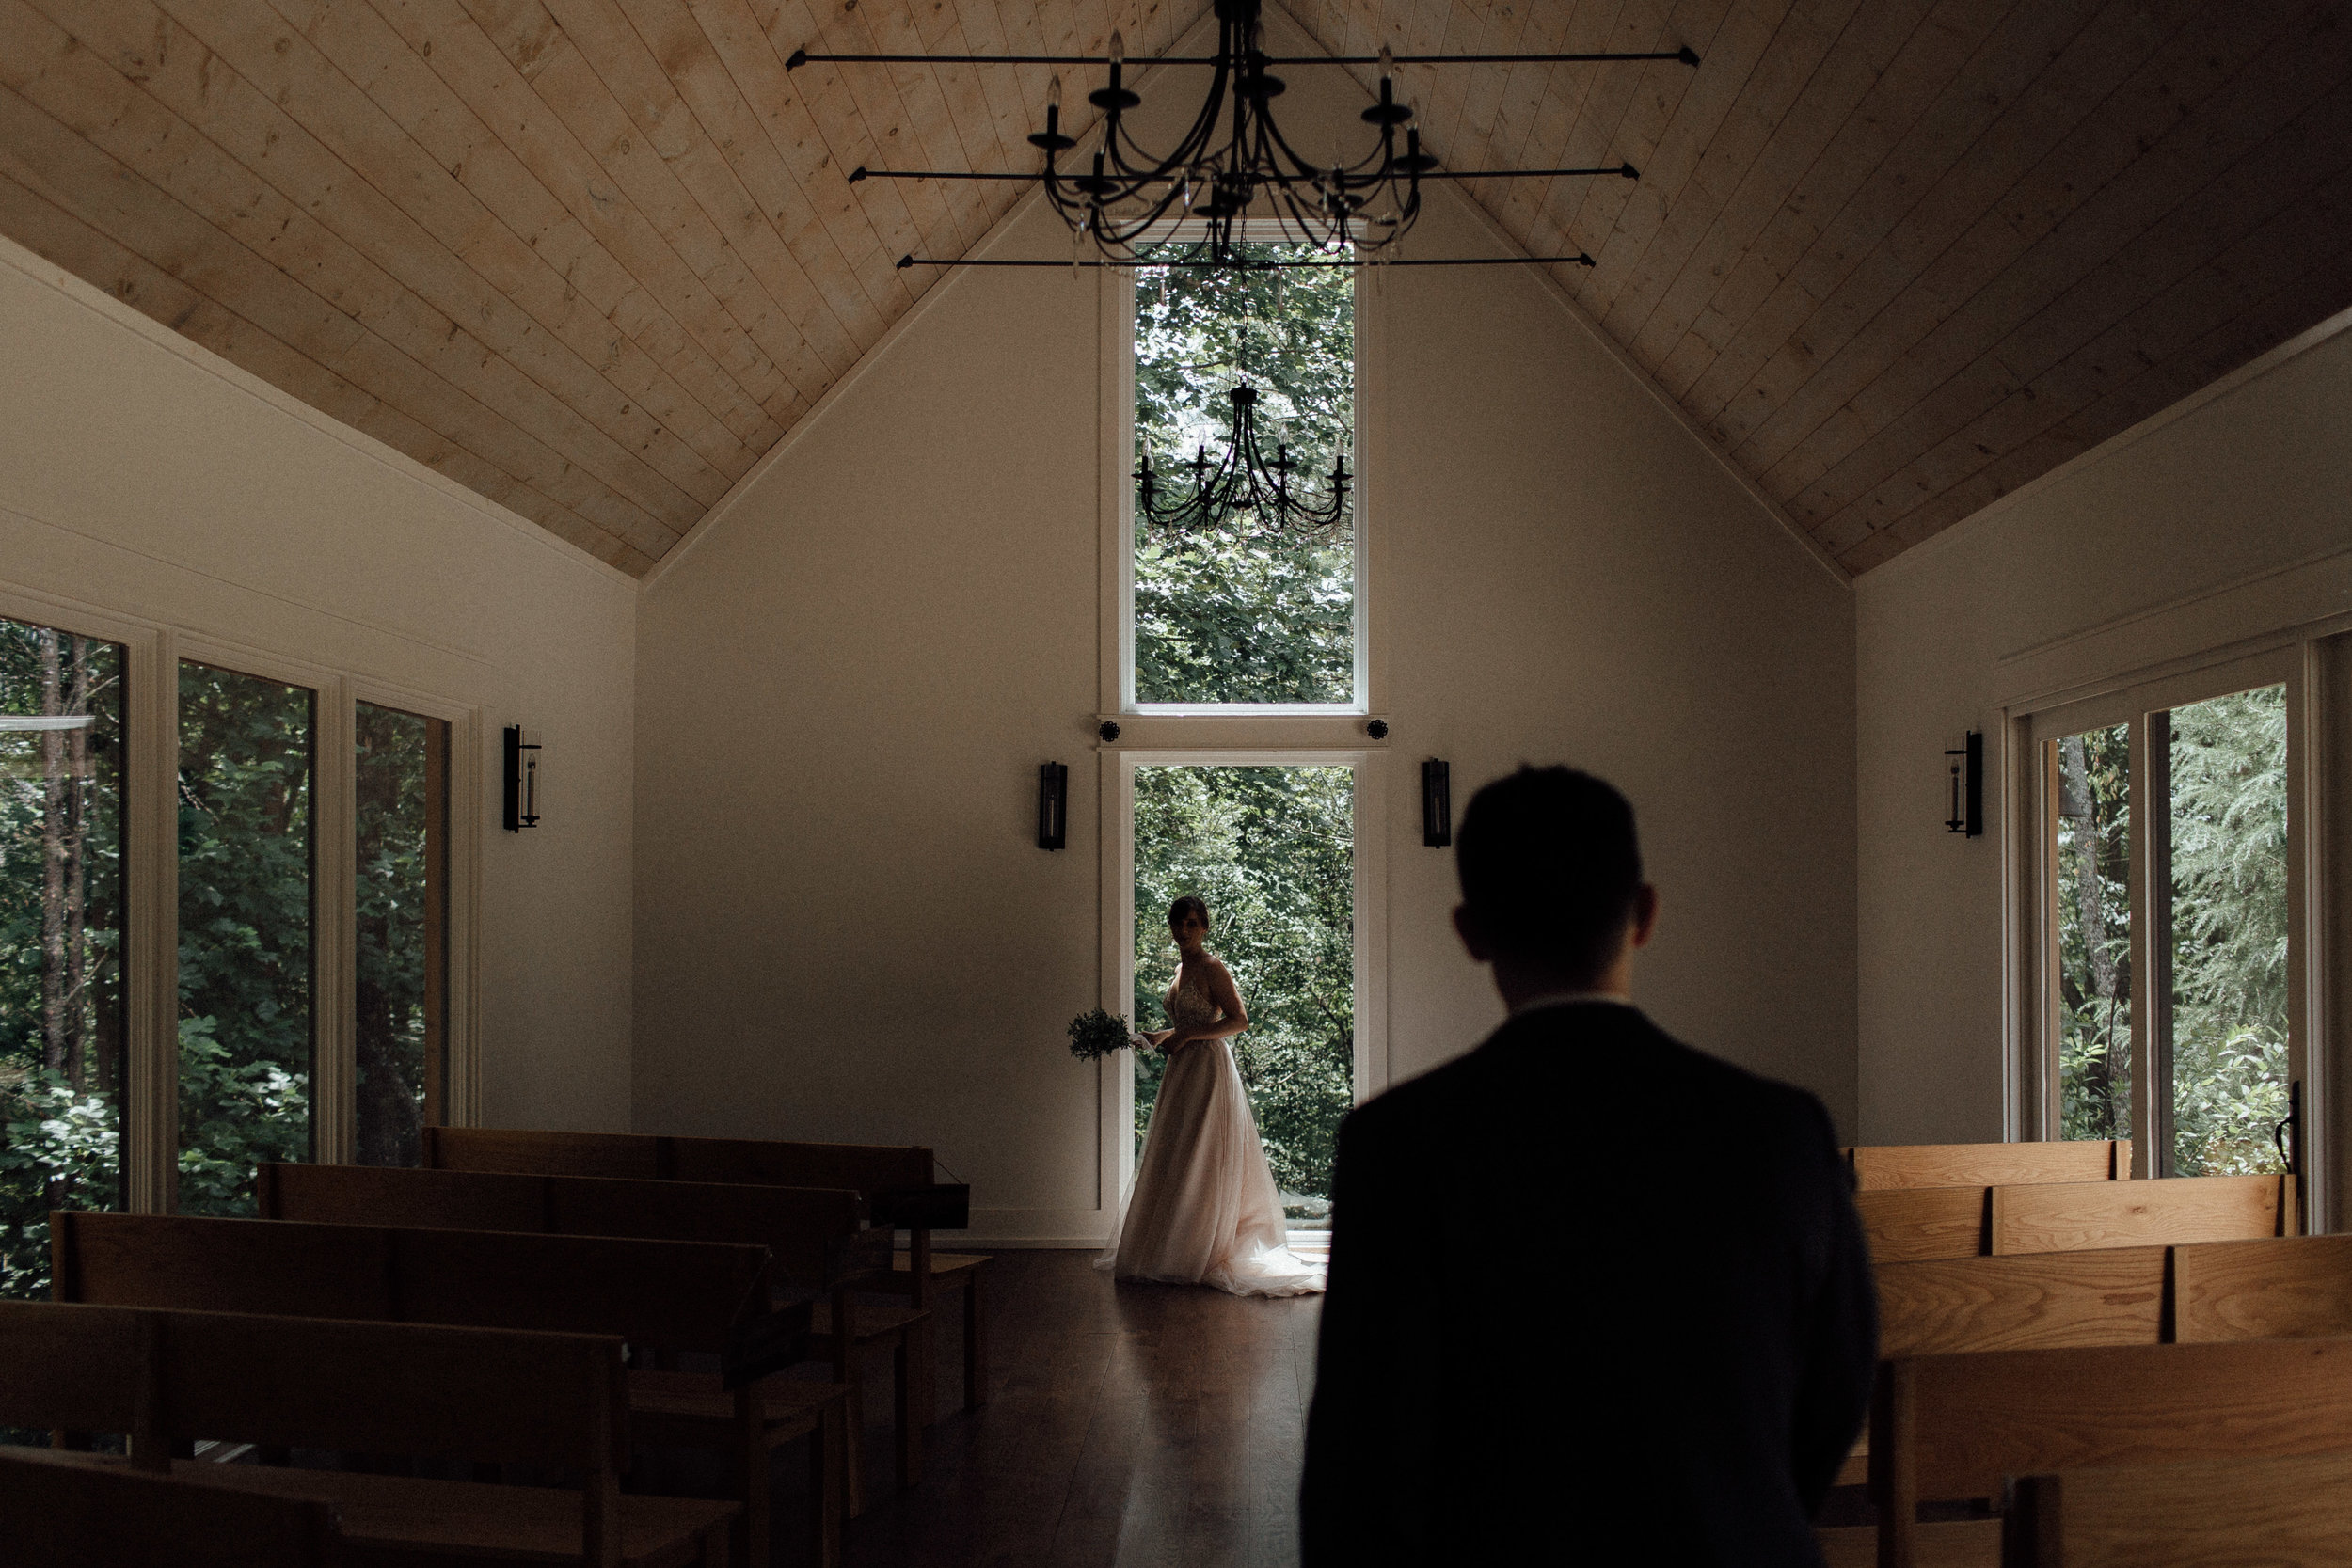 dahlonega_juliette_chapel_photojournalism_atlanta_wedding_photographers_1325.jpg